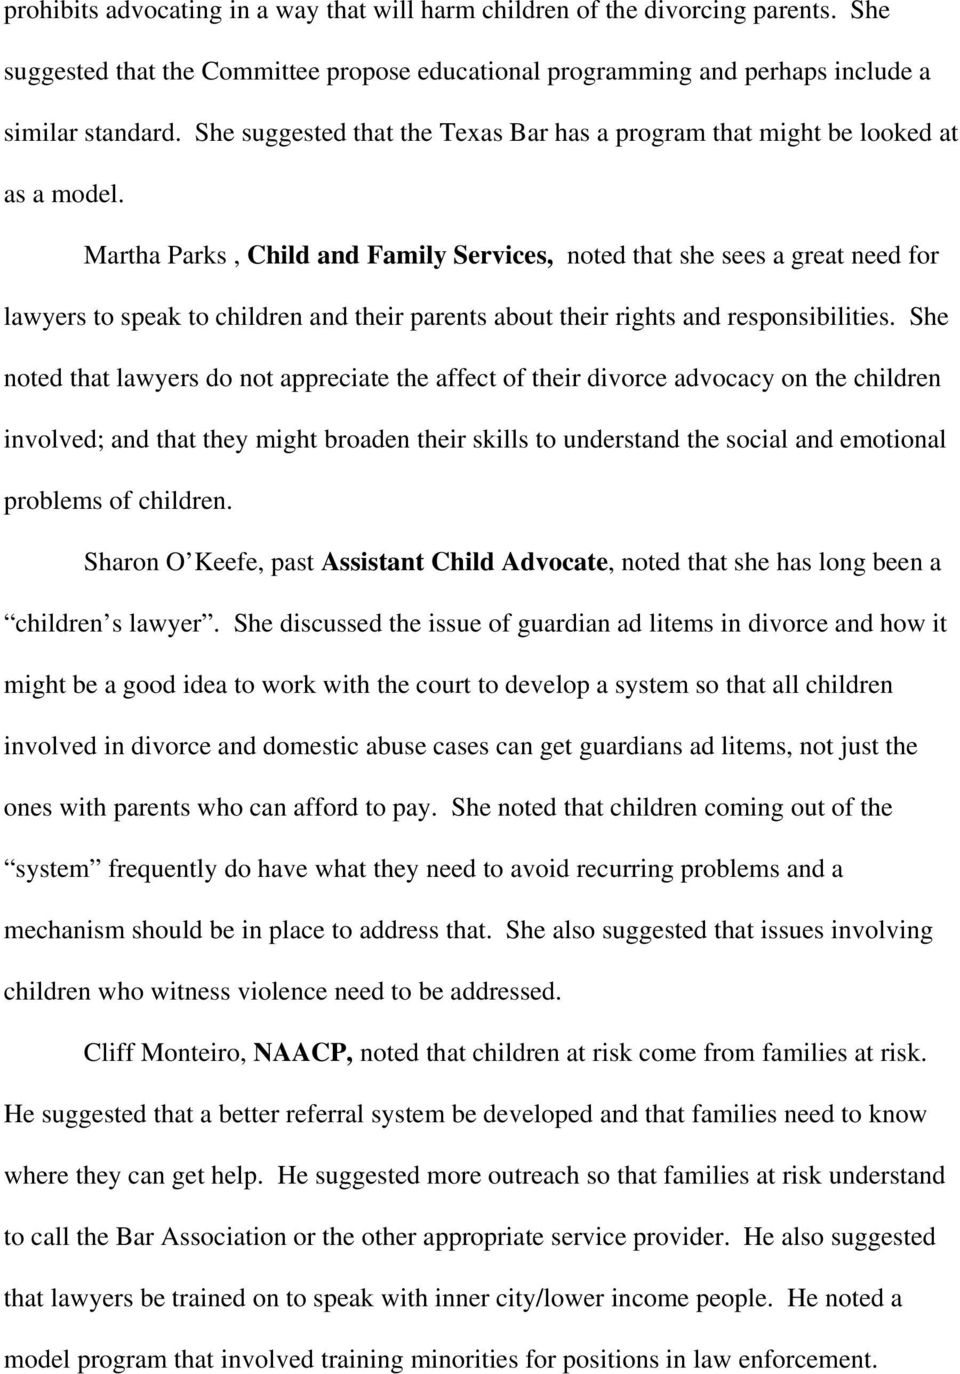 Martha Parks, Child and Family Services, noted that she sees a great need for lawyers to speak to children and their parents about their rights and responsibilities.